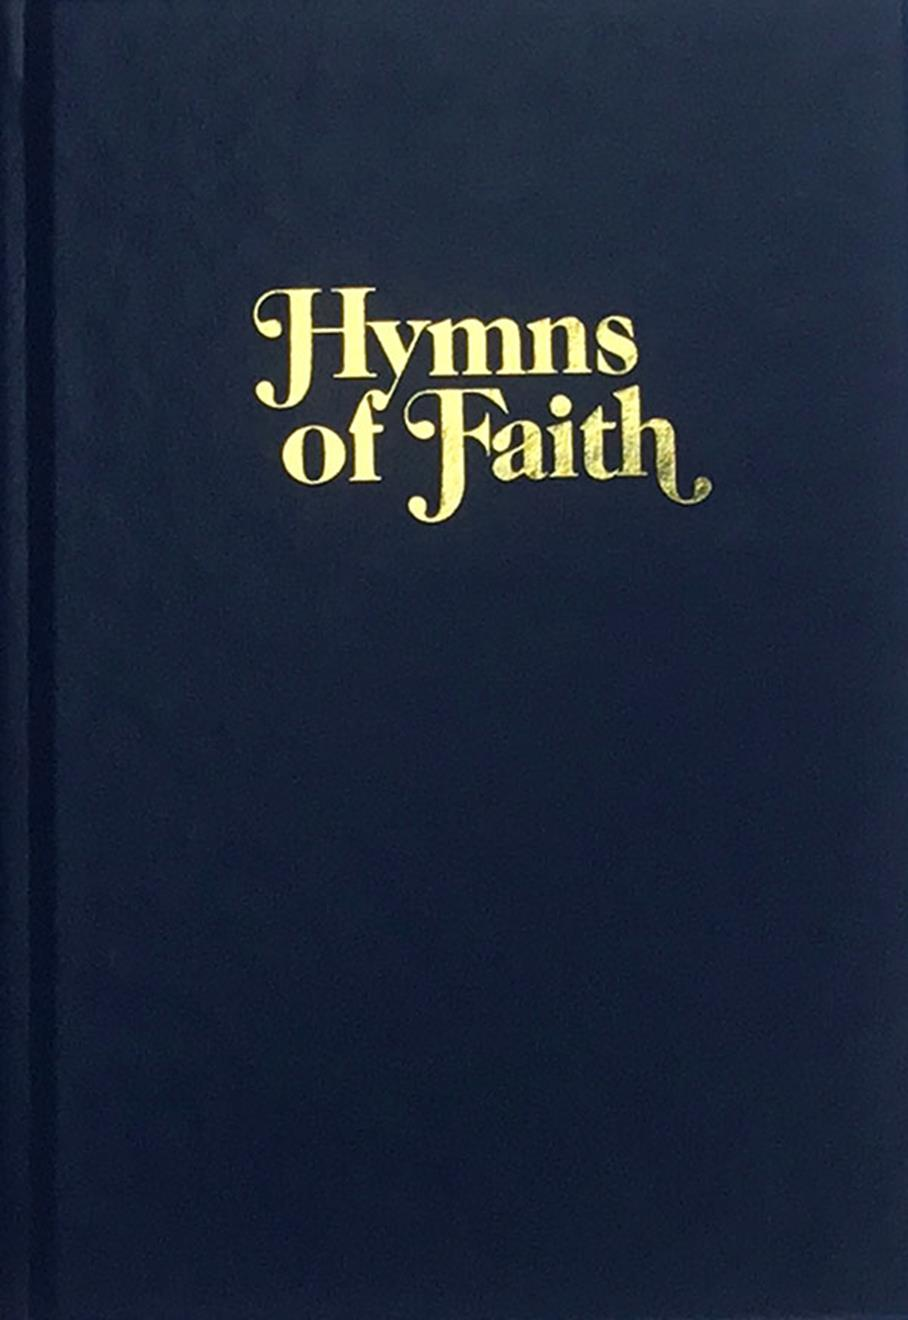 Hymns of Faith - Blue Cover Image